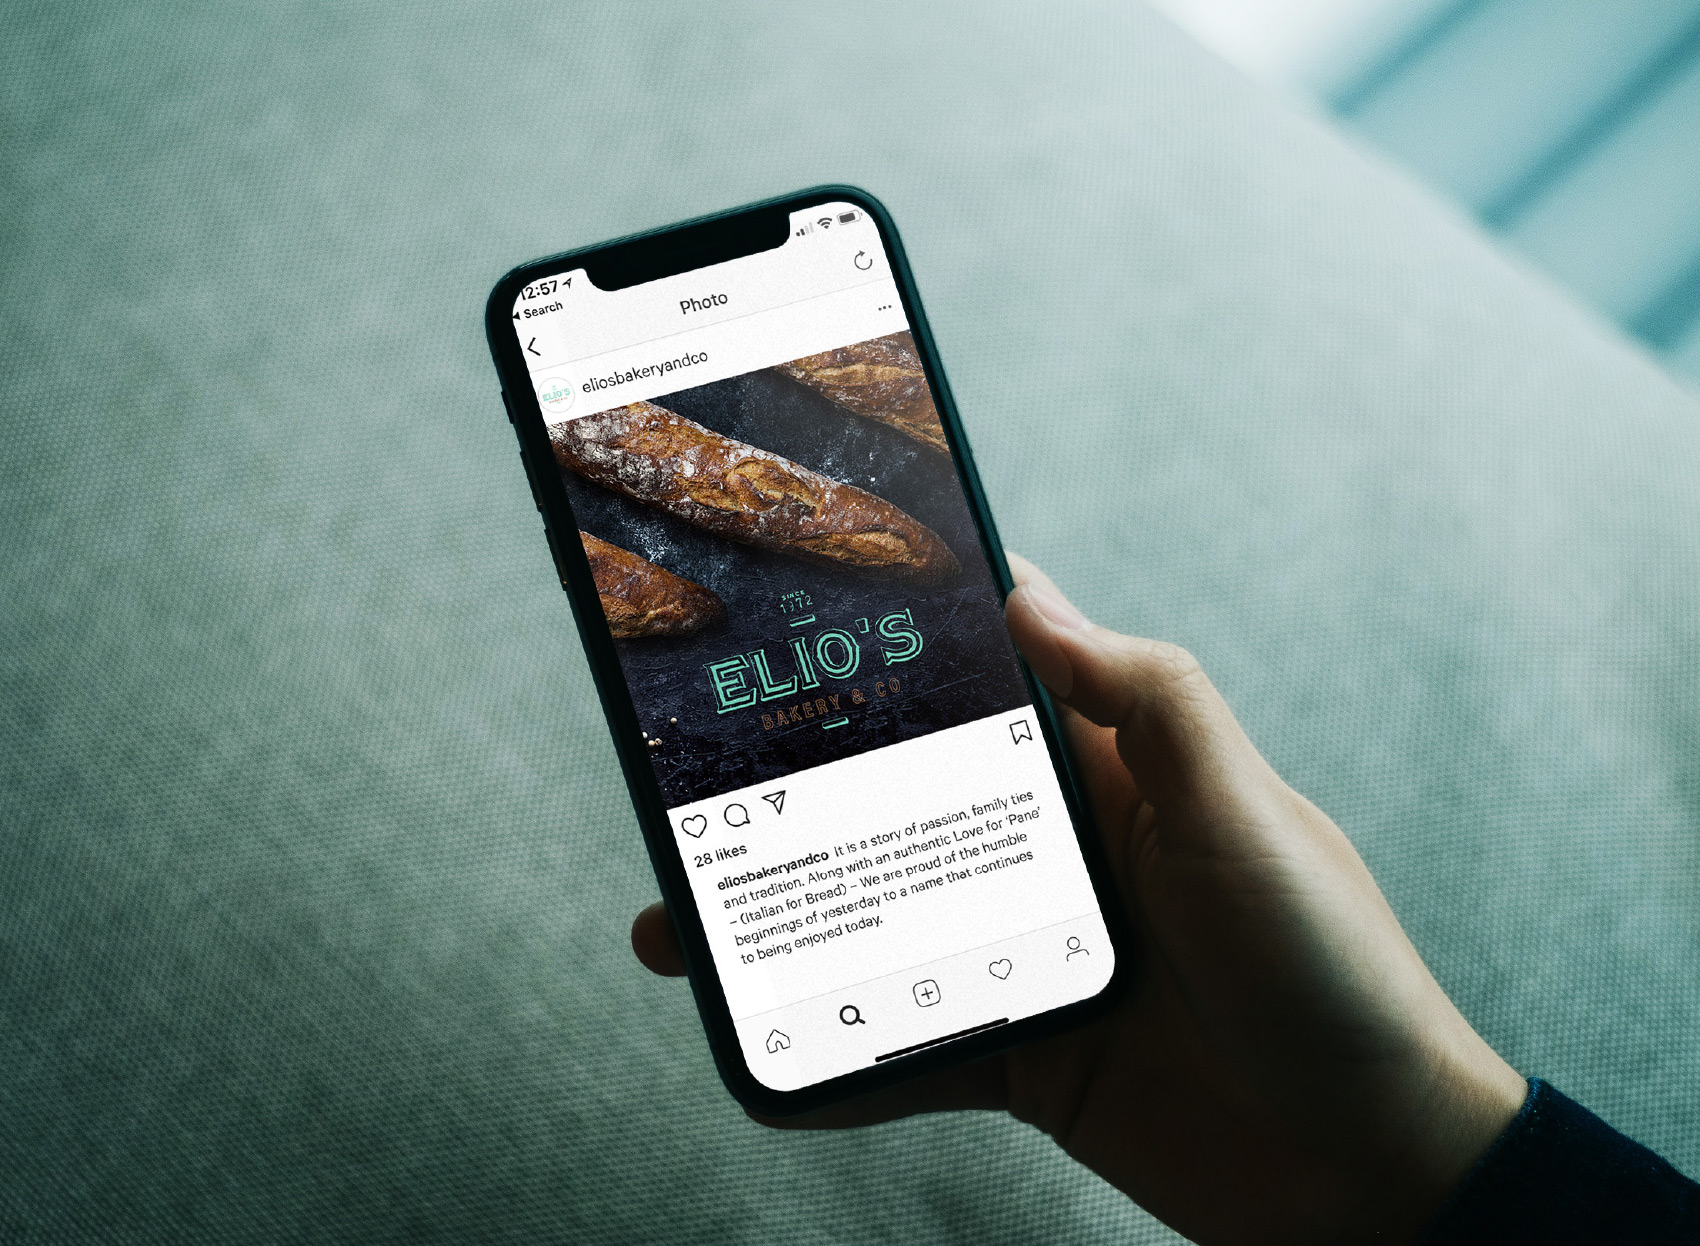 Elios Bakery & Co | Modemedia